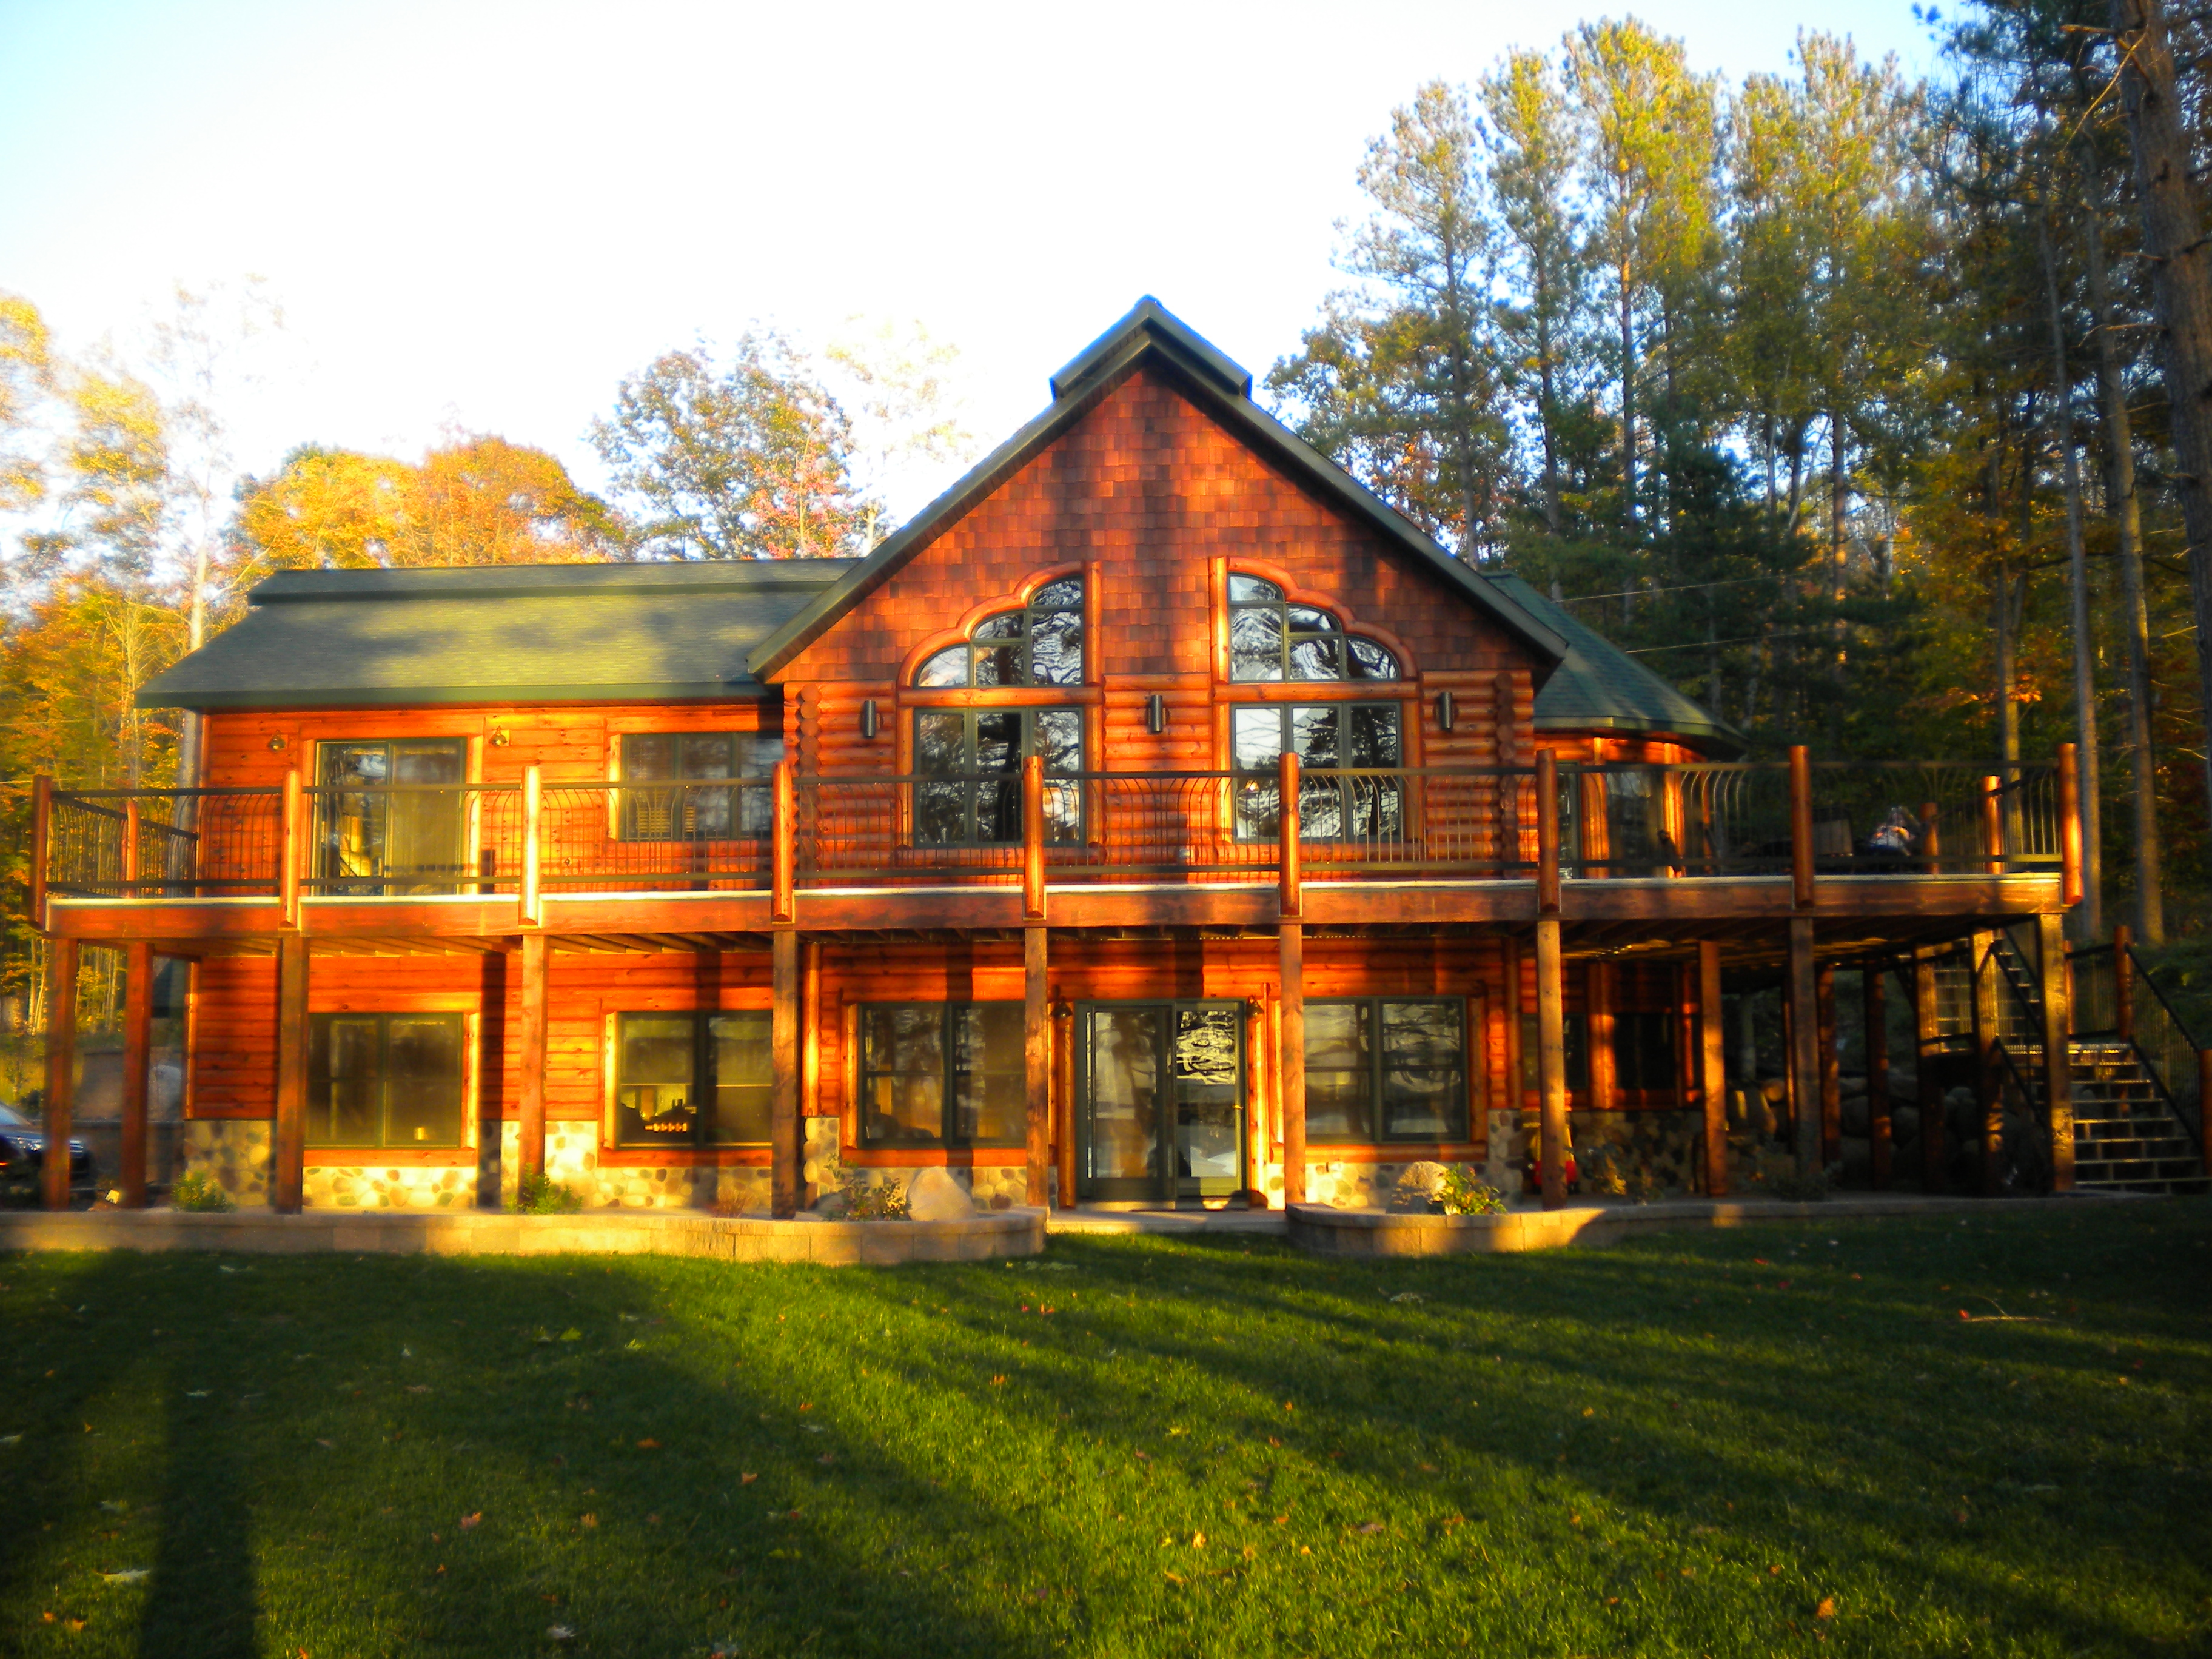 Marvelous photograph of saturday at the cabin mansion my aunt and uncle found a &q  with #C0900B color and 3648x2736 pixels